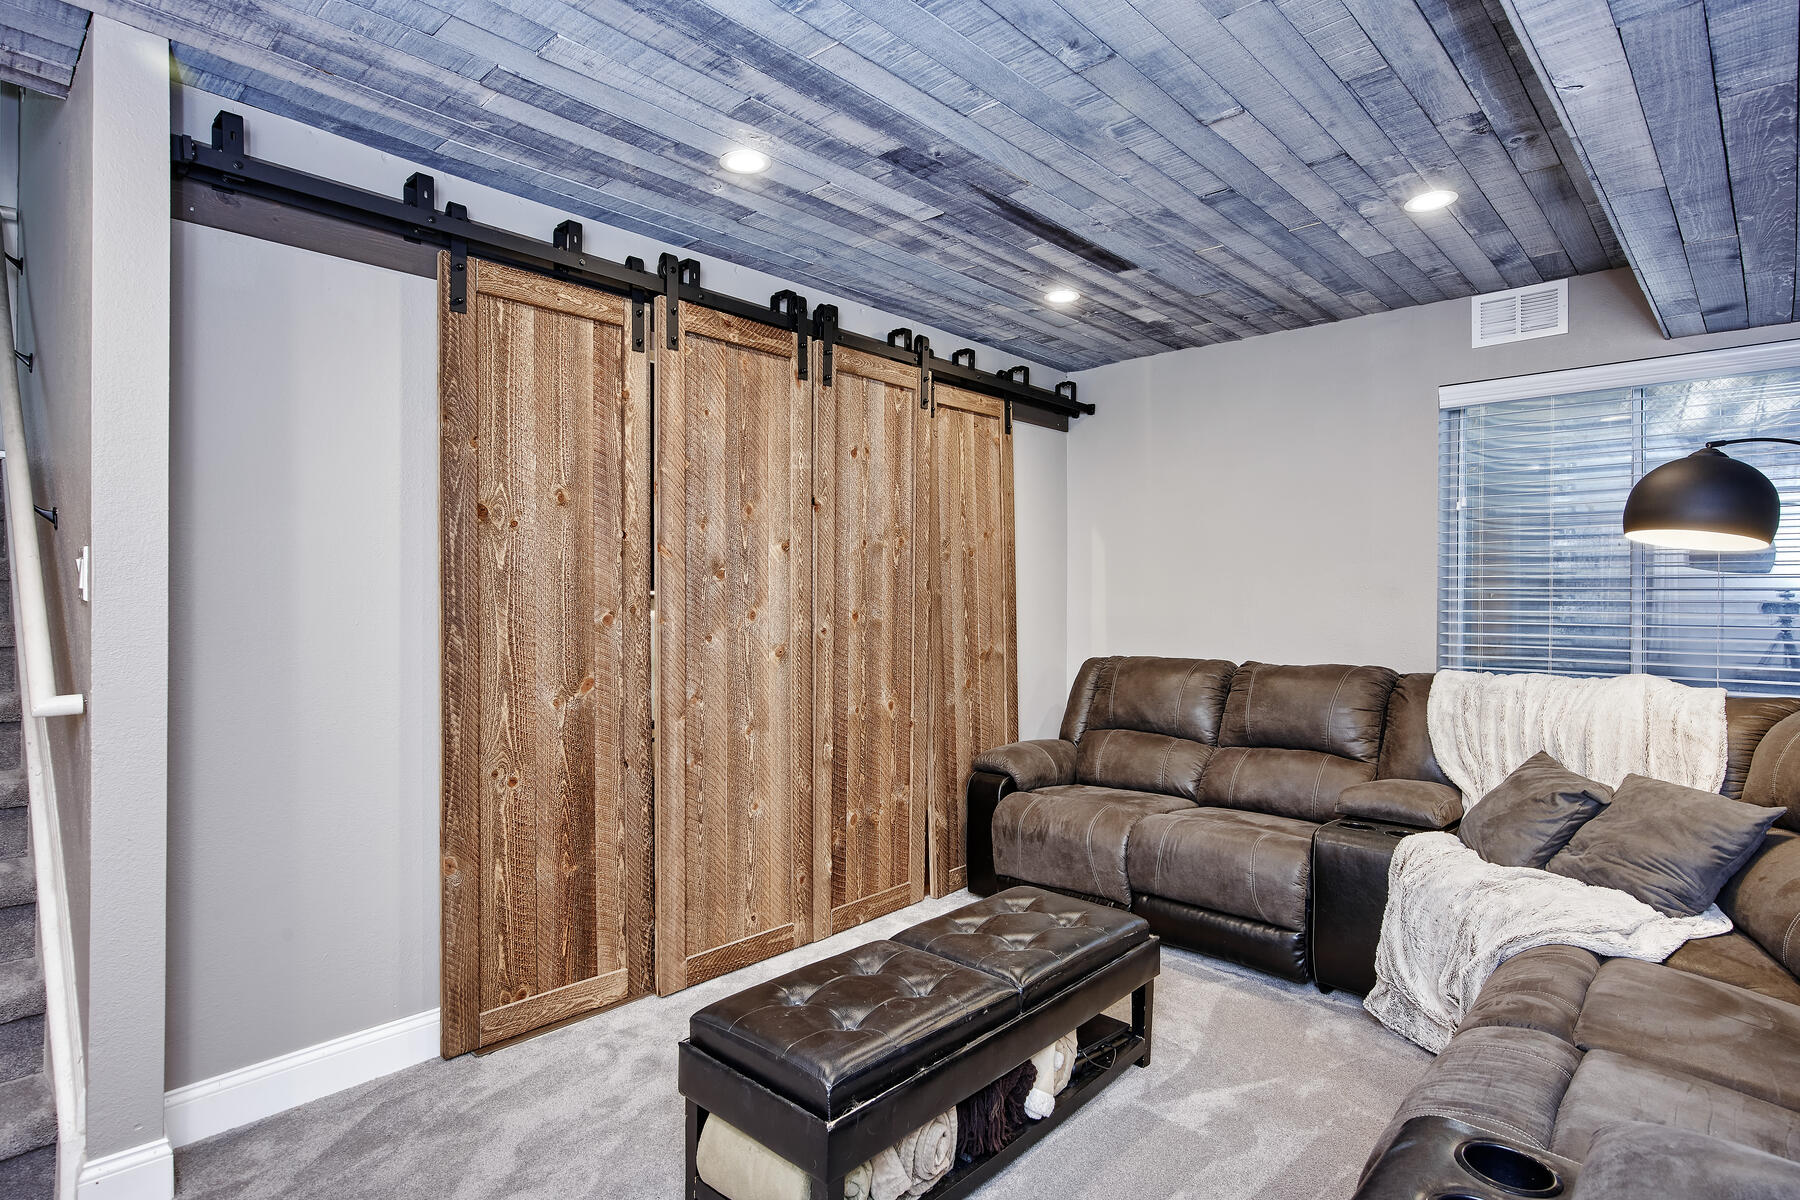 Sliding Barn Doors Cover Workspaces/Closet